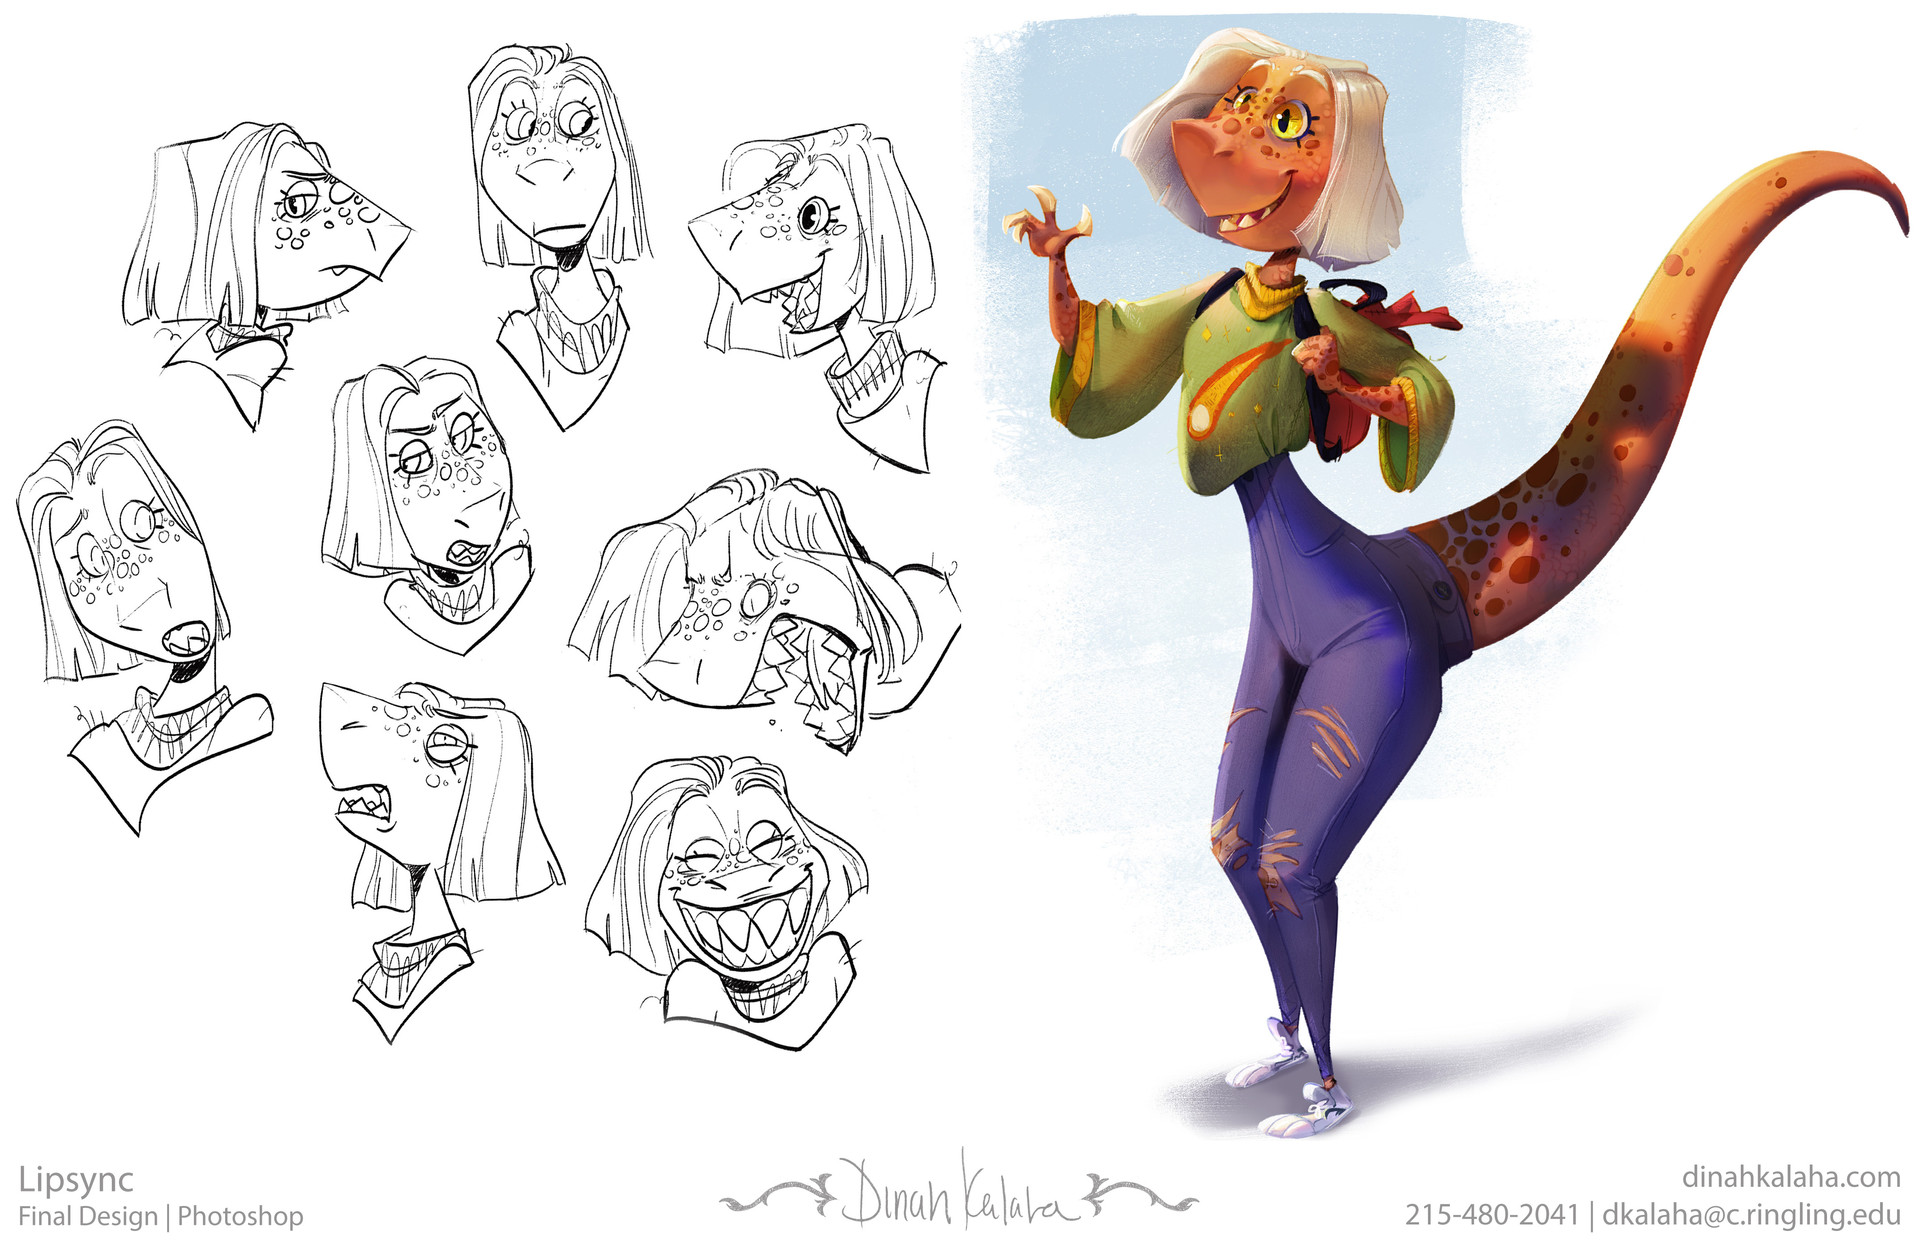 Dinahsaur Expressions & Painting